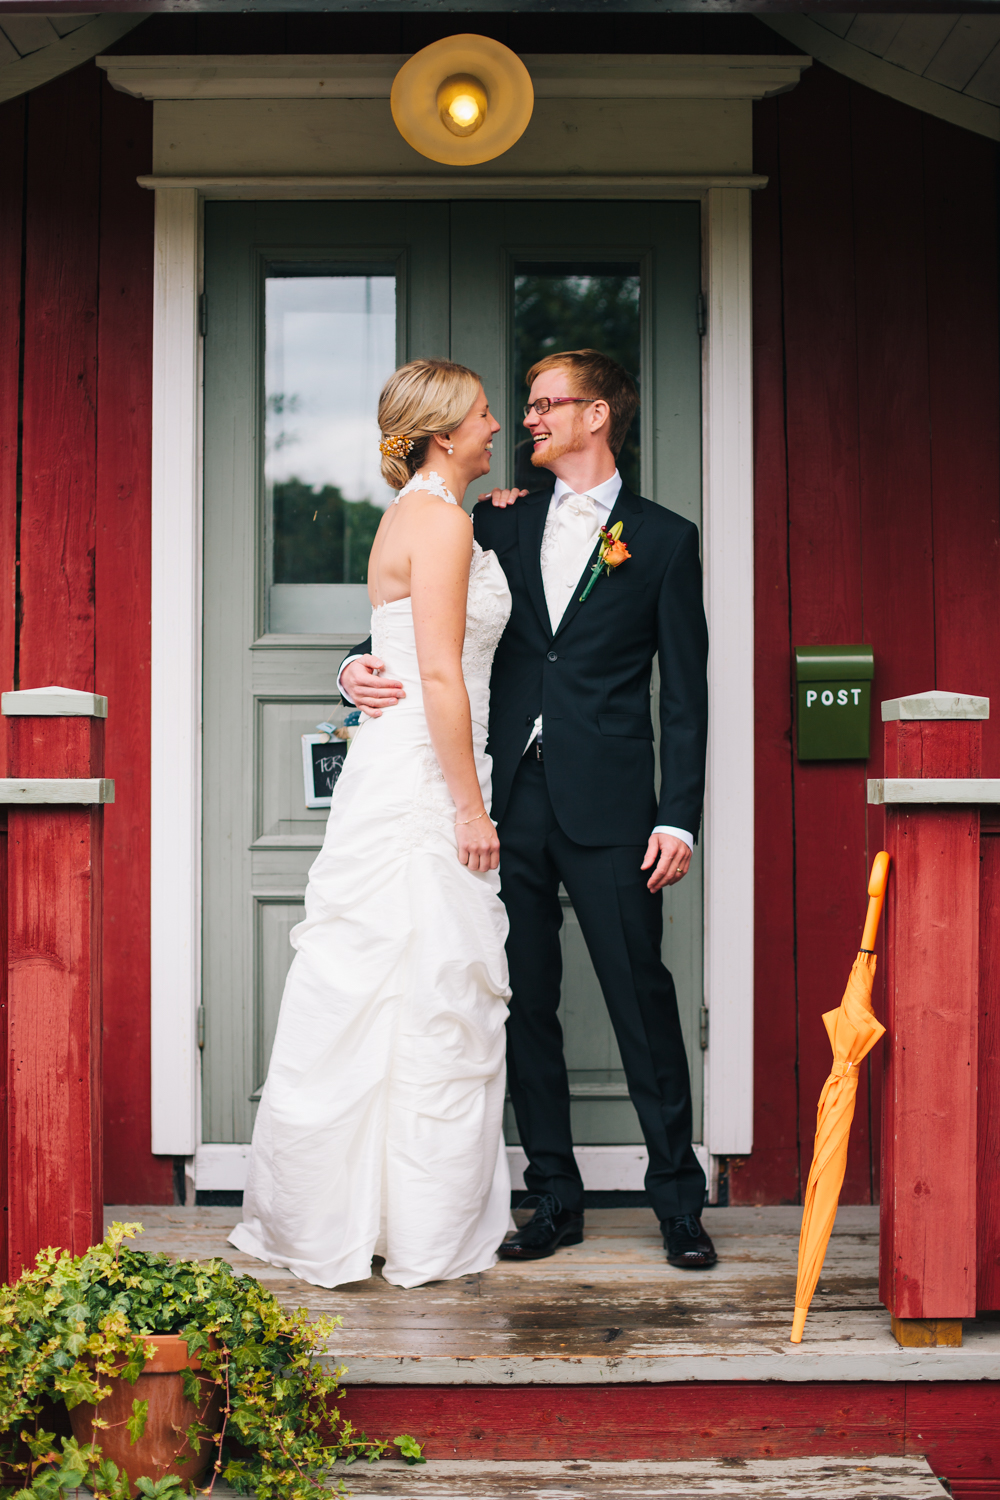 wedding_stina_johan-33.jpg